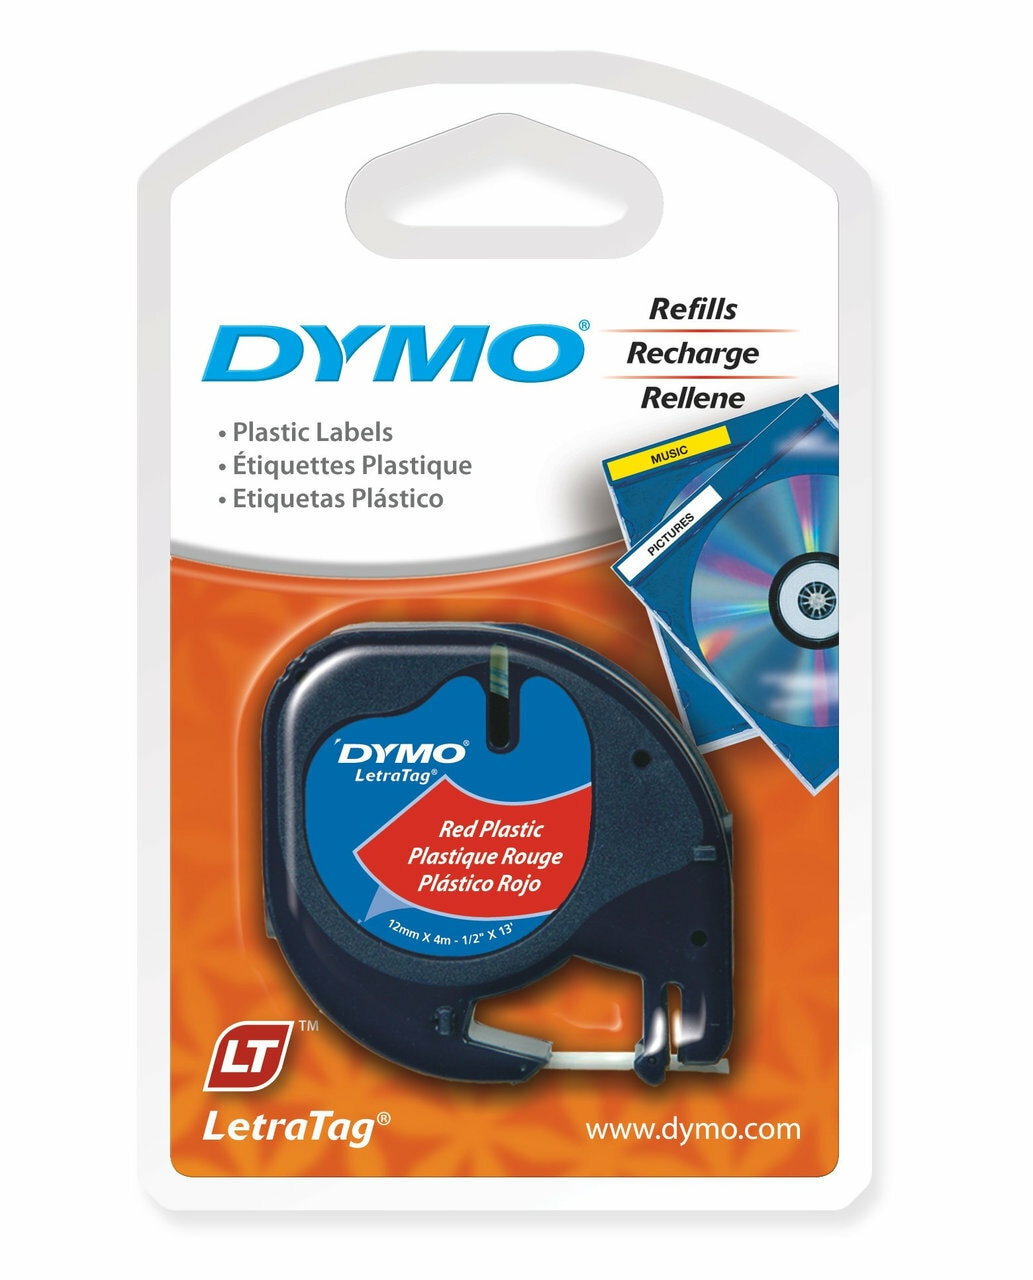 DYMO #SD91203 LETRATAG LABEL TAPE 12MM X 4M BLACK ON COSMIC RED PLASTIC  (EACH) SD91203